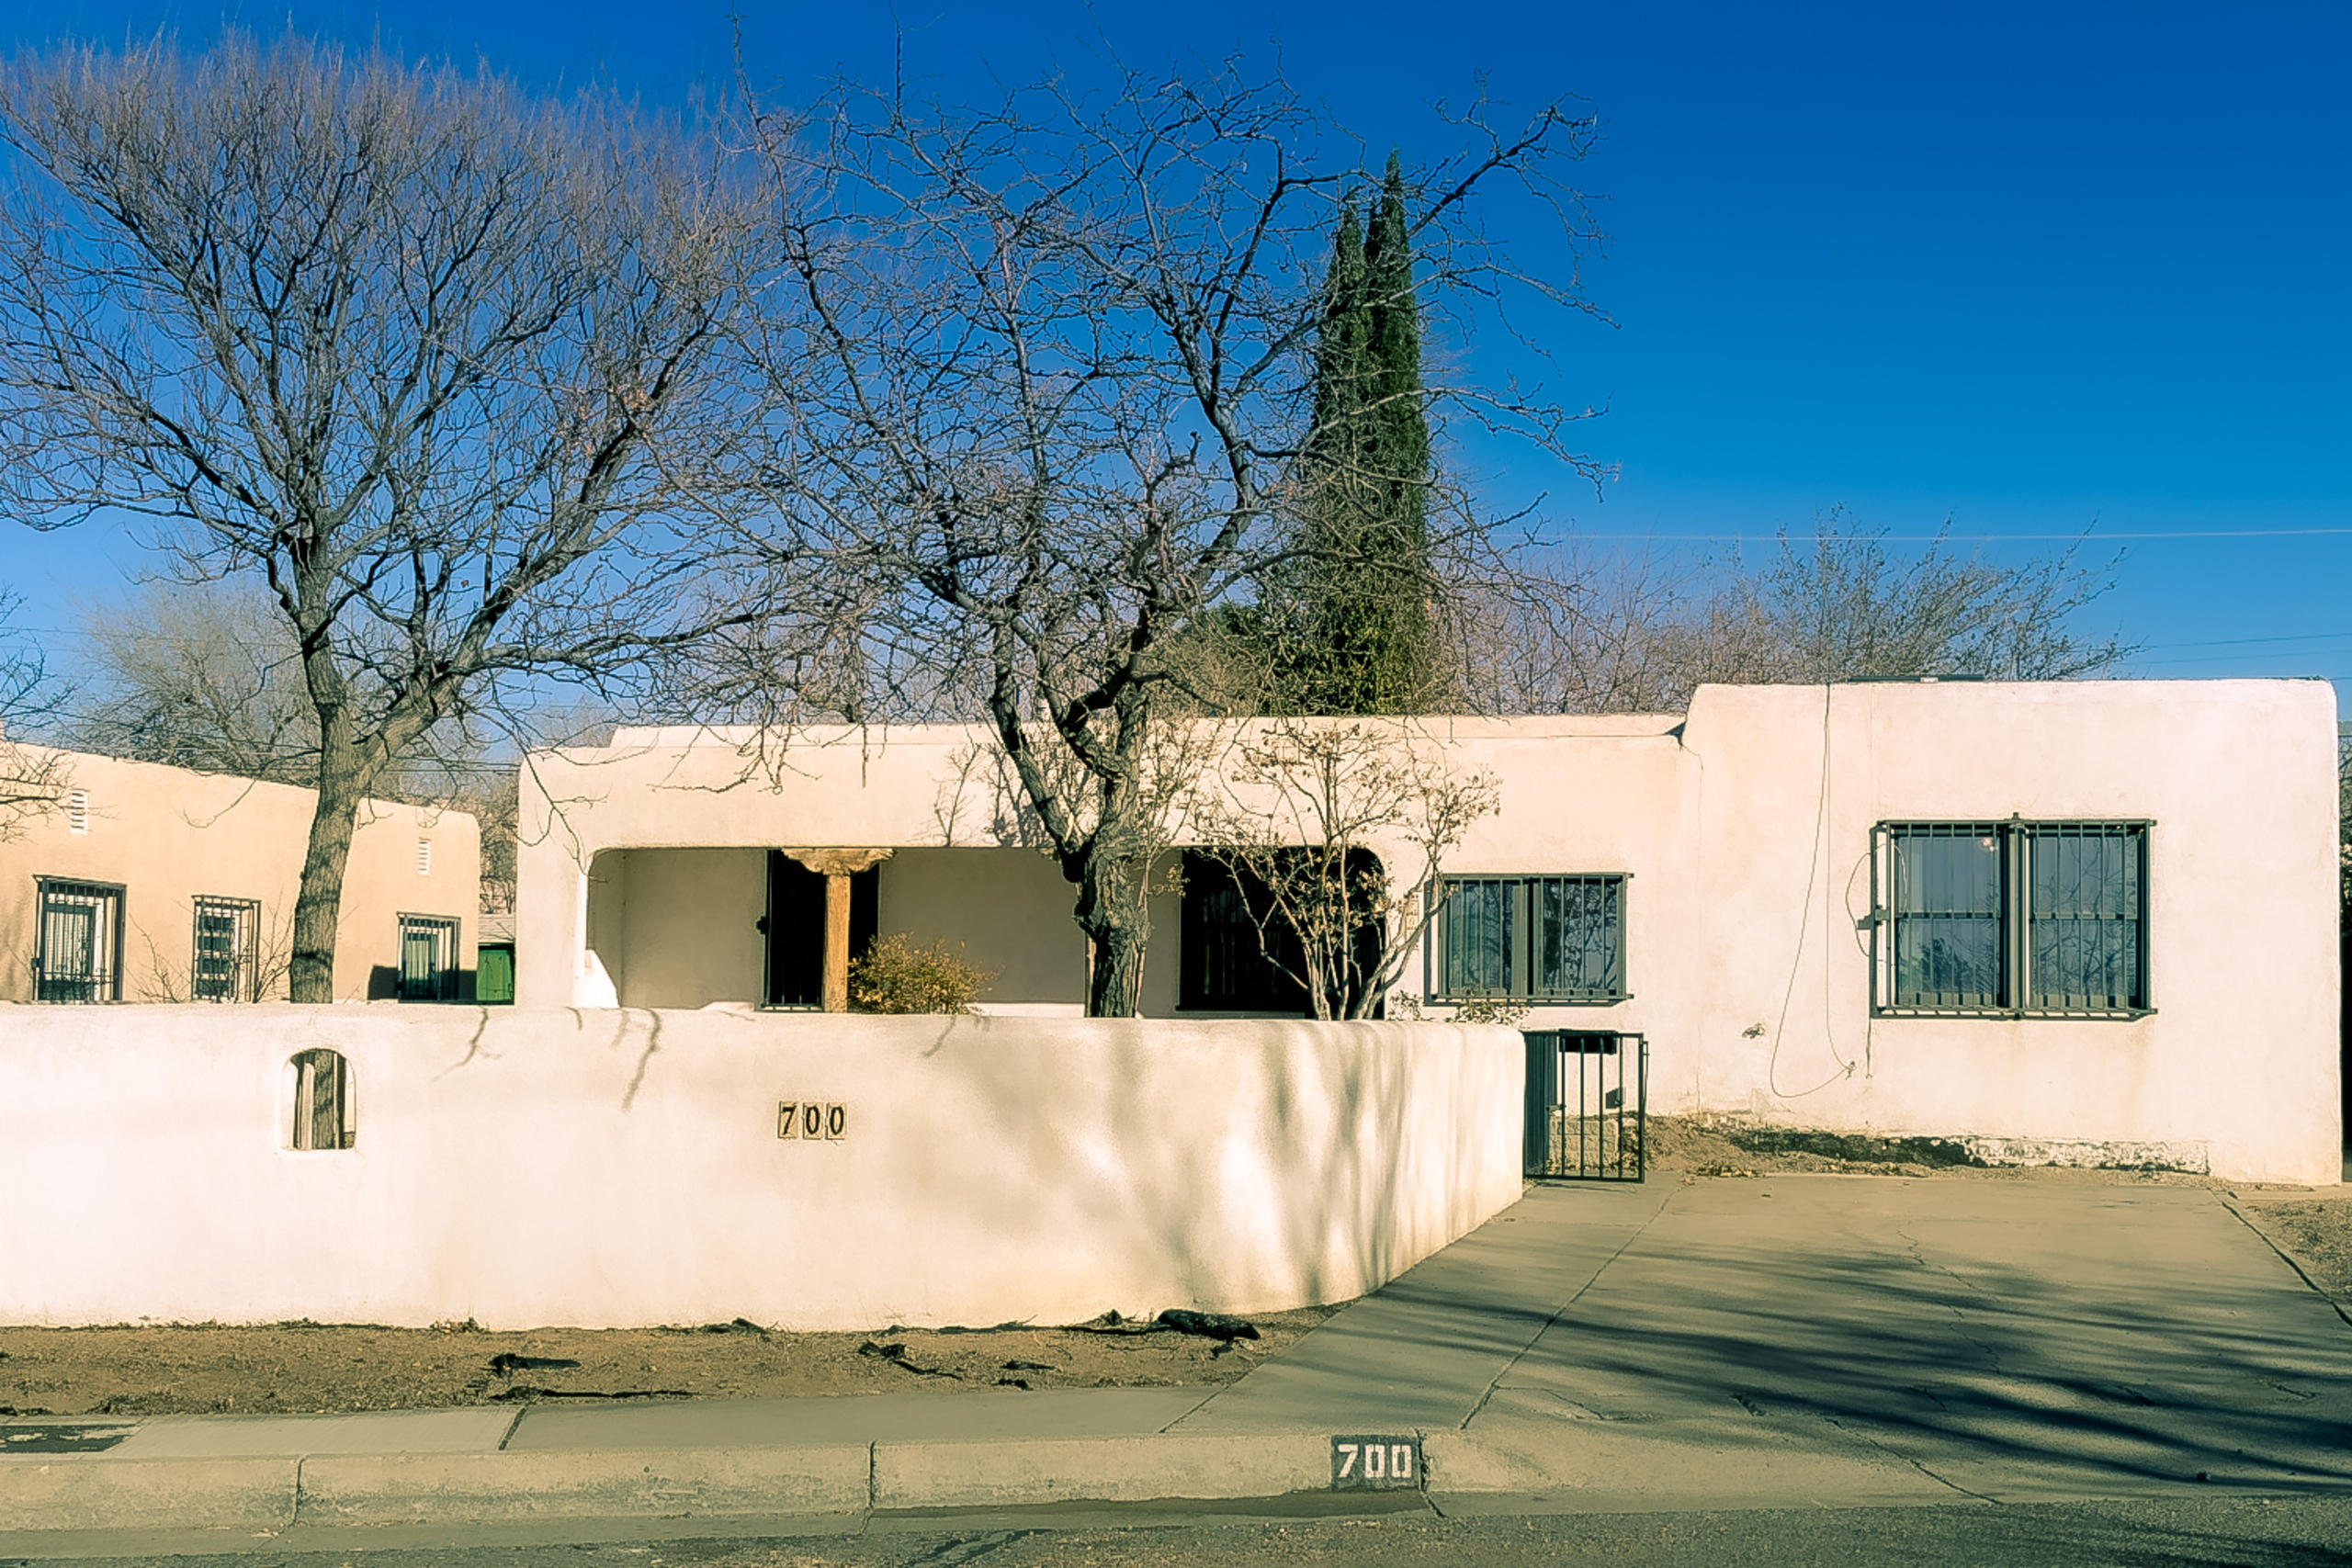 Charming S UNM Victory Hills pueblo-style casa w/ tons of upside potential! Nestled on a quiet block, the 3 bed, 1.75 bath residence offers approx 2,052 square feet of versatile space. Costly recent upgrades include updated elec panel/service & CFA heating/refrigerated AC combo (both 2019). Living room front side & generously proportioned family room at the back w/ electric heated fireplace & French doors to the back patio. Large kitchen w/ adjoining flex-space (possible 4th bedroom/office/3rd living space) & separate dining room. Outside: private walled front yard, covered front porch, sizable covered back patio w/ yard space to spare. Conveniently close to UNM & in the highly desirable Bandelier ES district. Listed ''as-is'' and priced accordingly- an excellent investment opportunity.